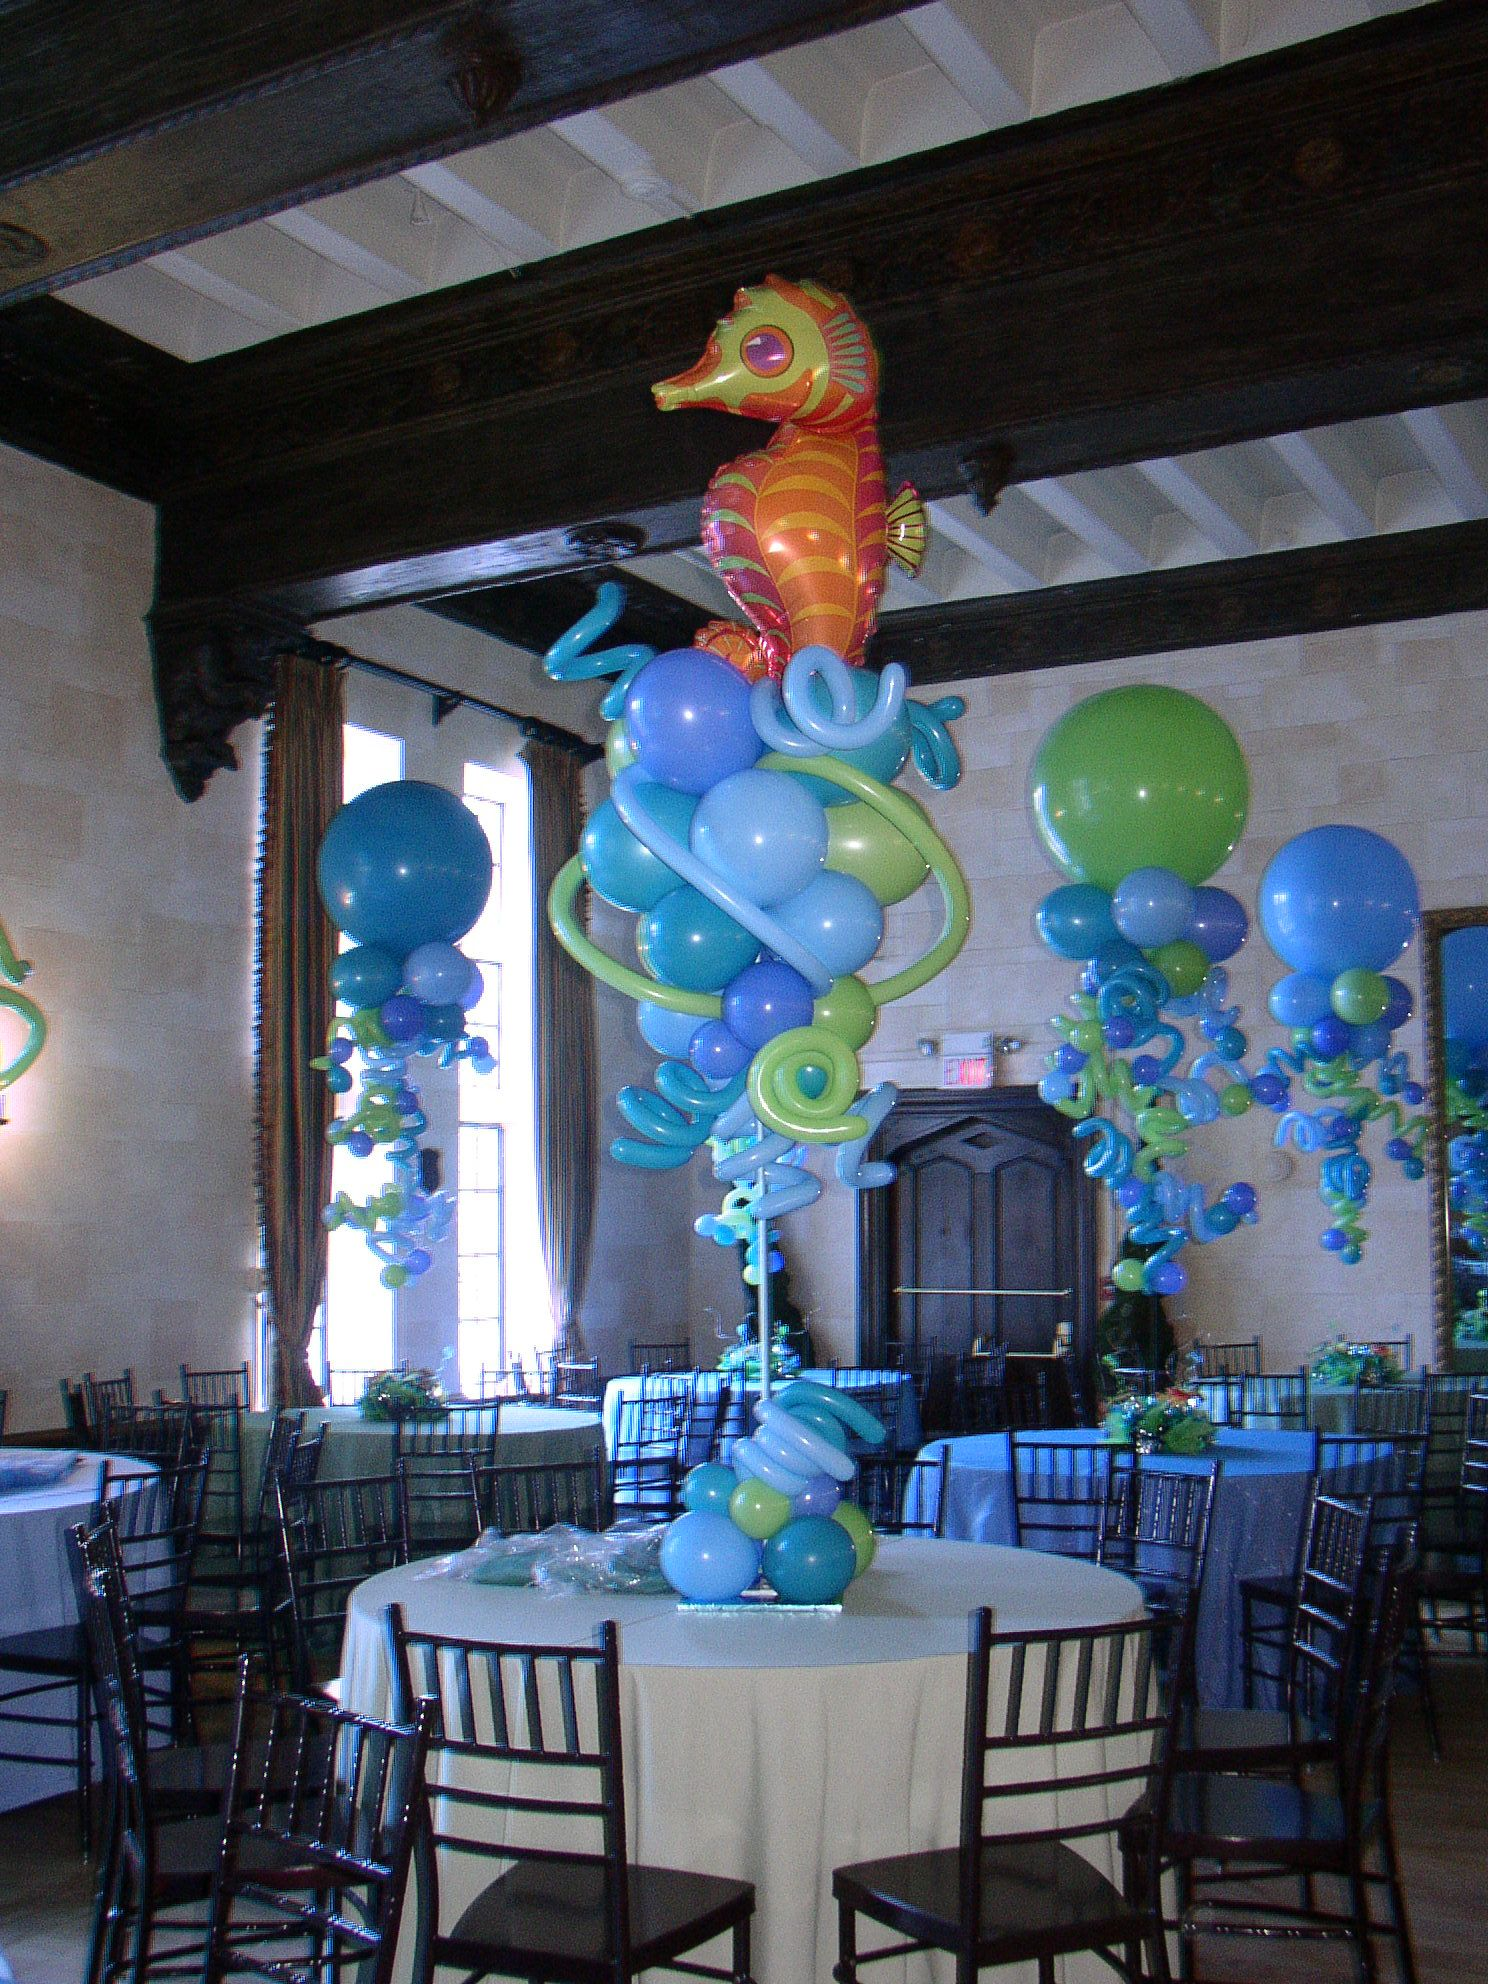 Underwater Theme Bat Mitzvah Decor With Balloon Topiaries Funky Flowers In The Background